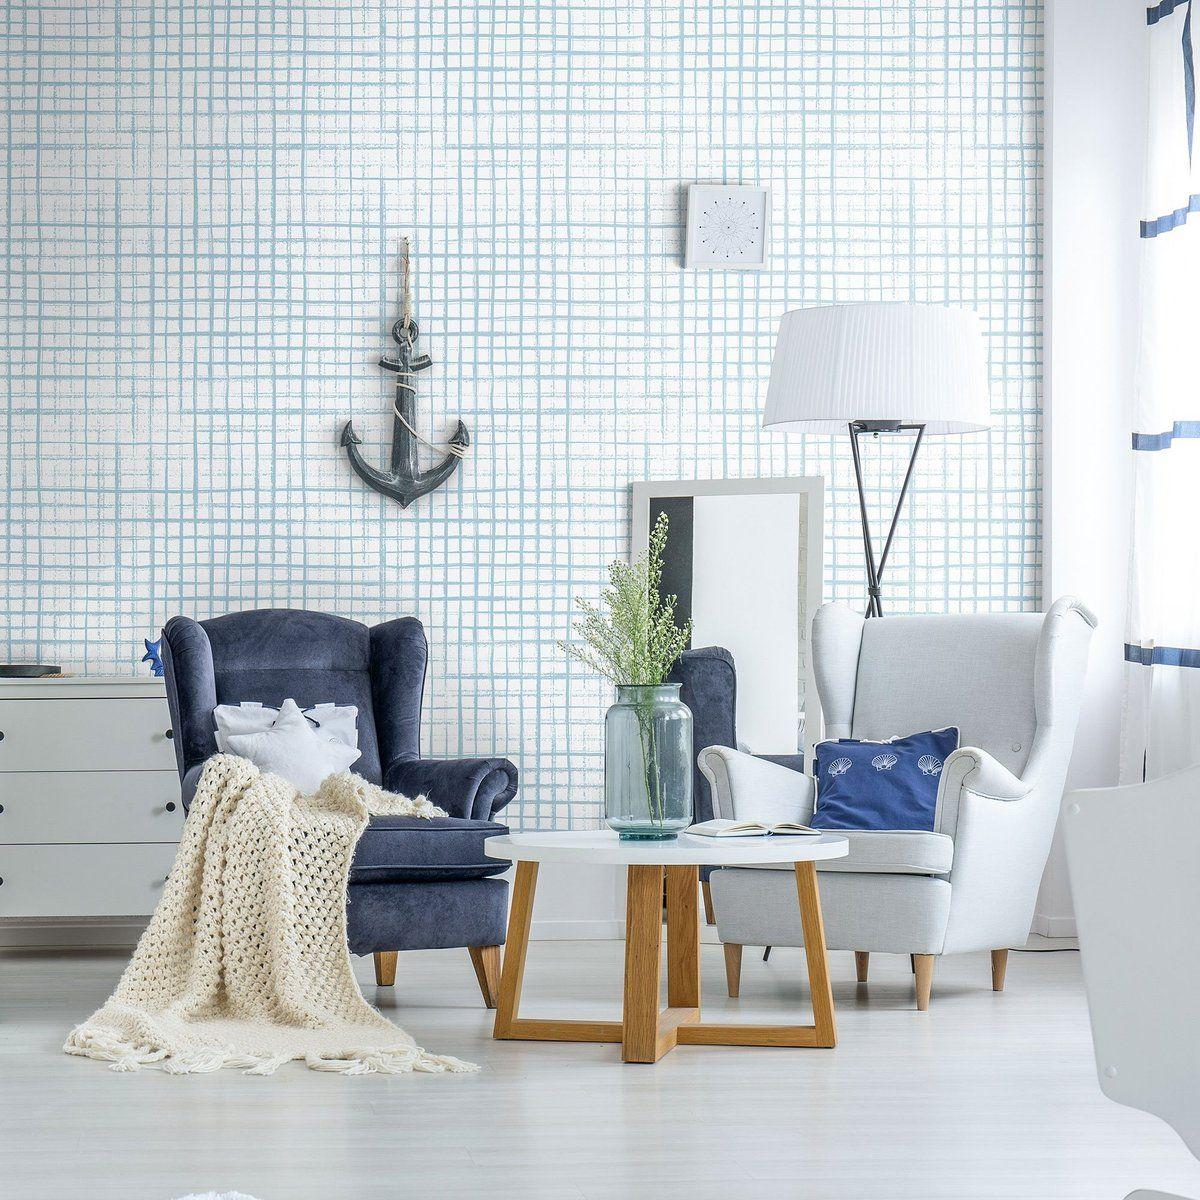 White And Blue Geometric Peel And Stick Removable Wallpaper 1830 Geometric Removable Wallpaper Removable Wallpaper Geometric Wallpaper Design